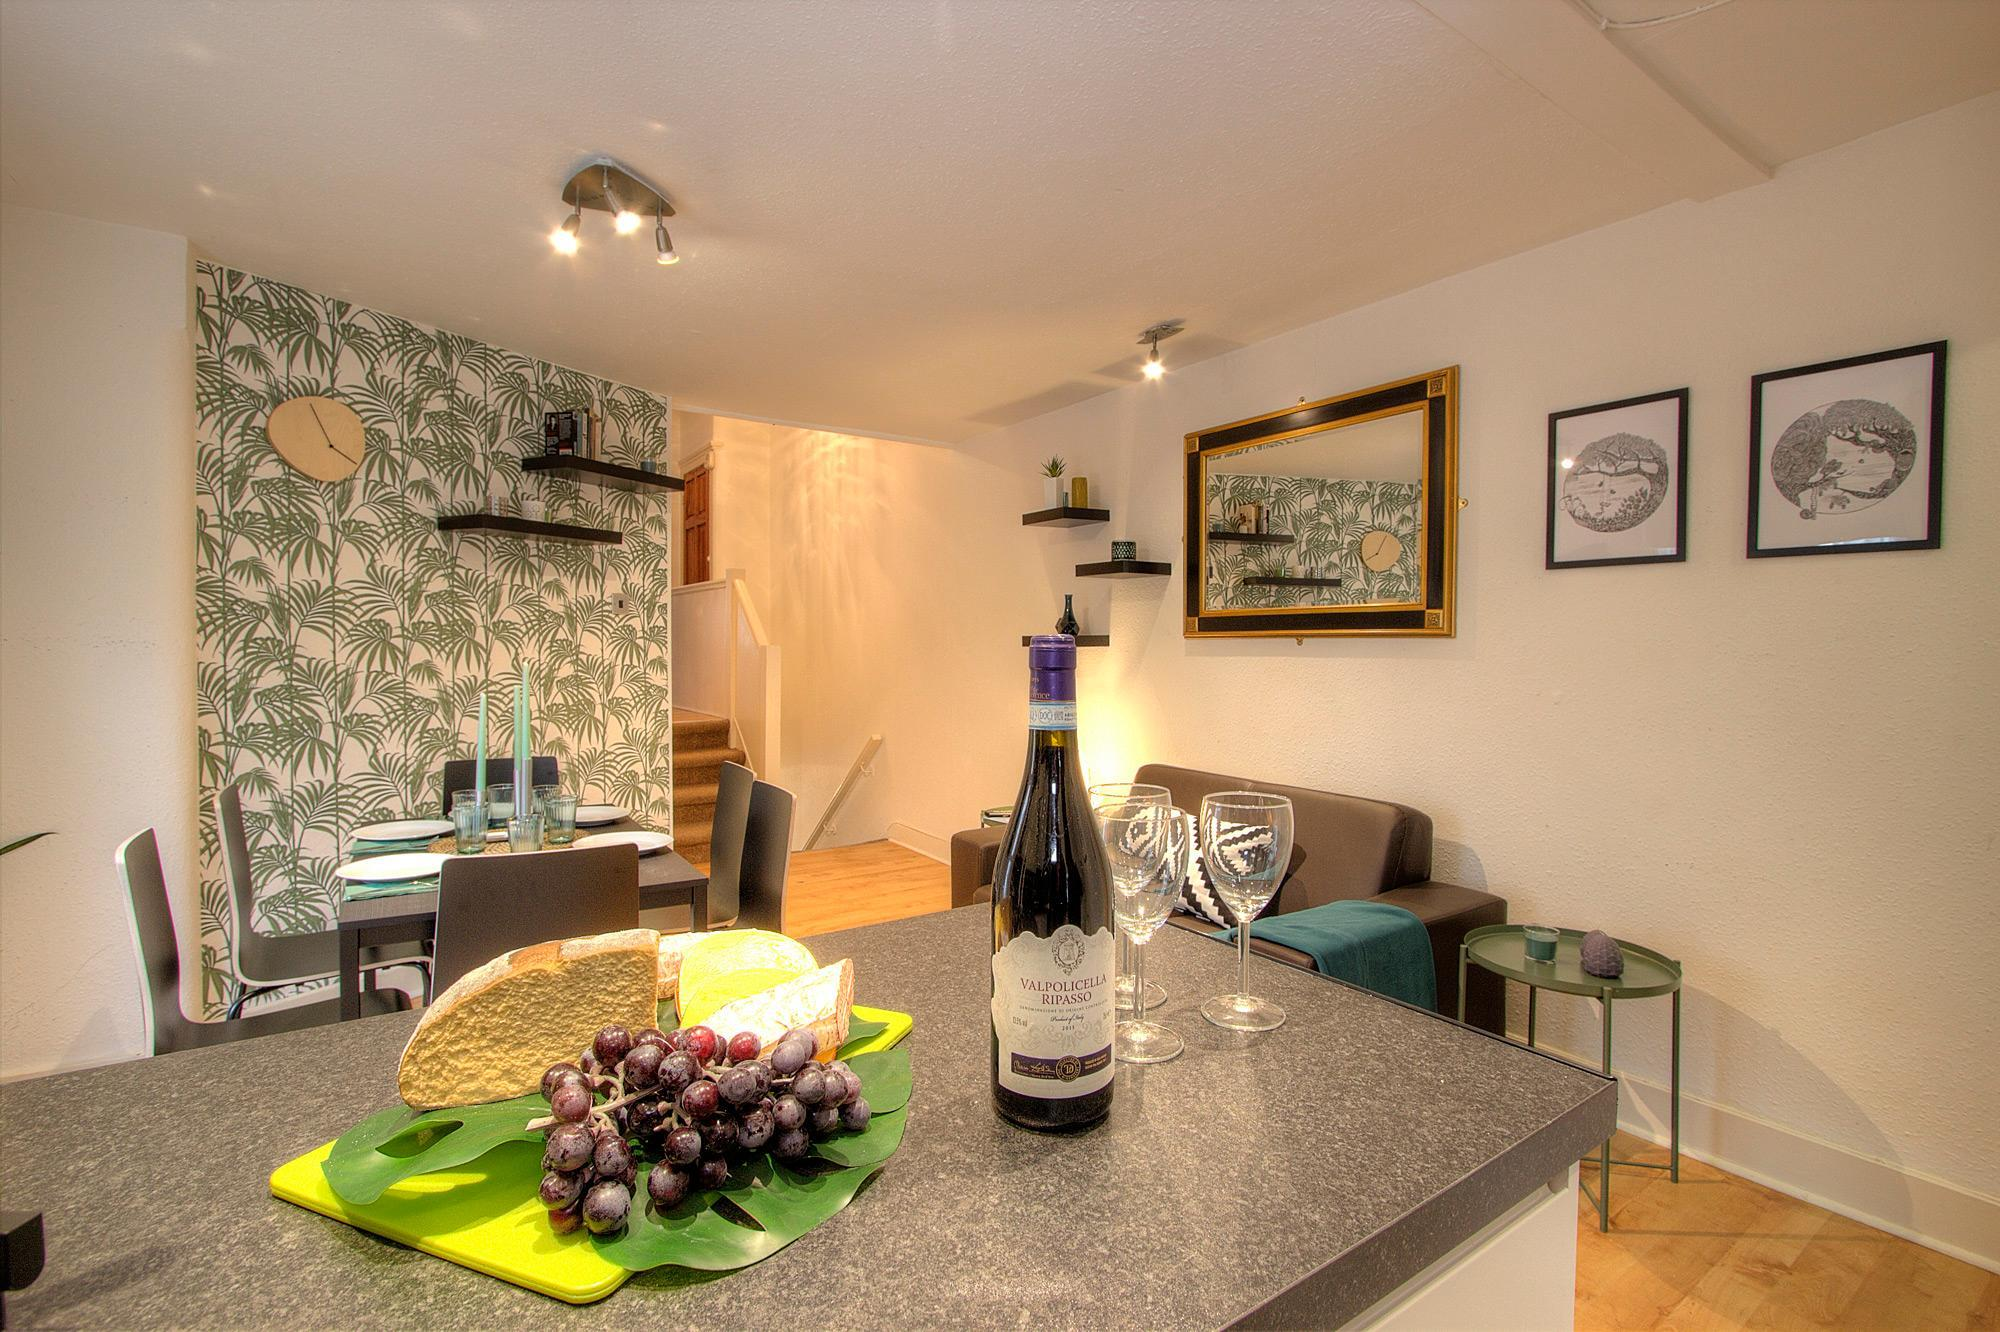 3 Bedroom Apartment in London #QP Discount